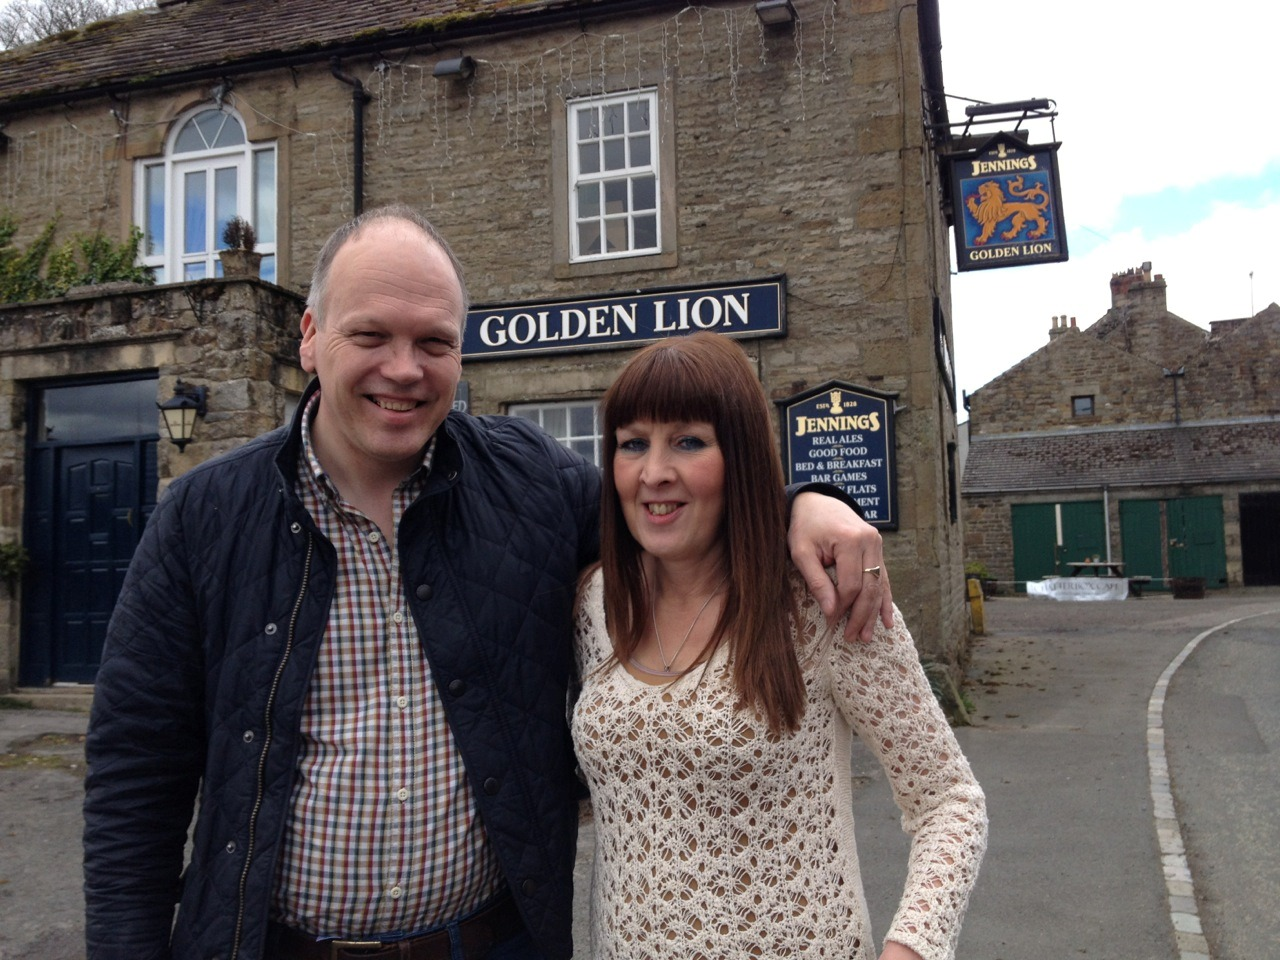 The former owners of Emmerdale's 'Woolpack' inn, Glenn and Caroline Royston